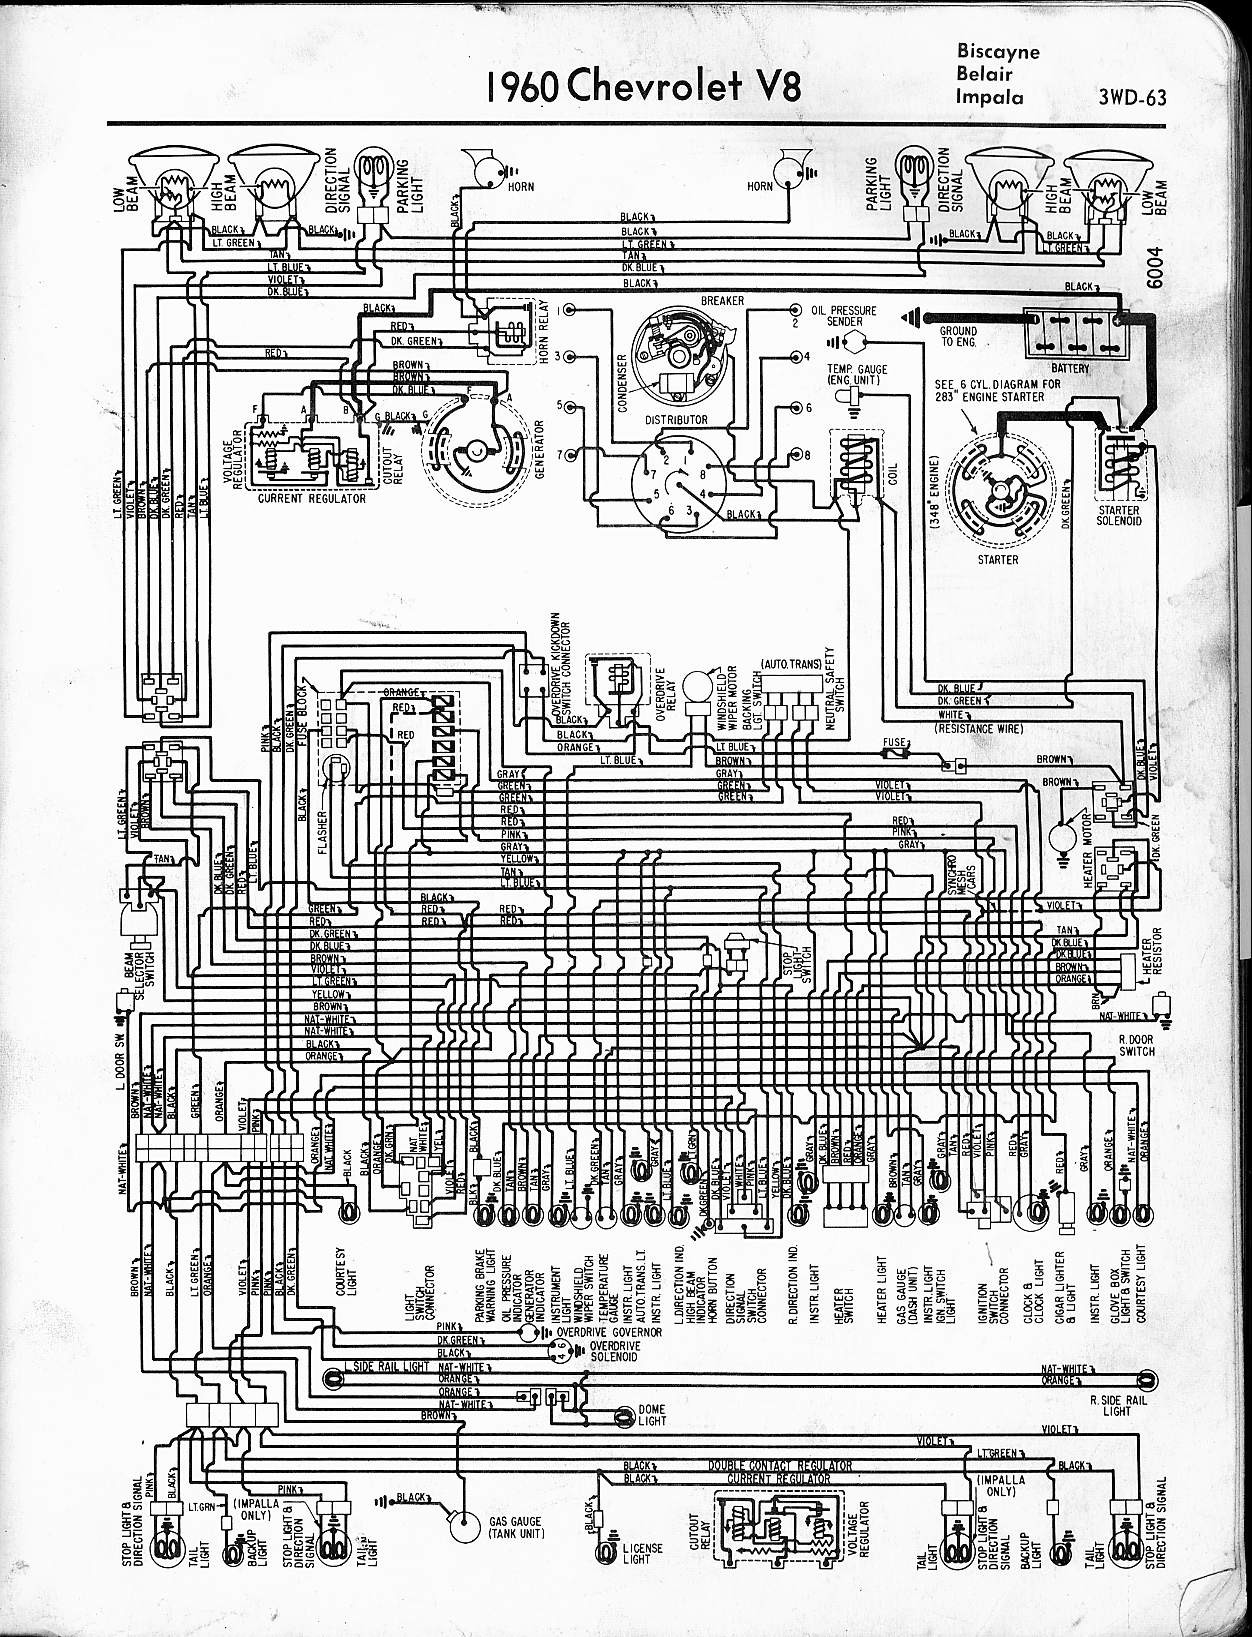 1963 Chevy Truck Wiring Diagram 57 65 Chevy Wiring Diagrams